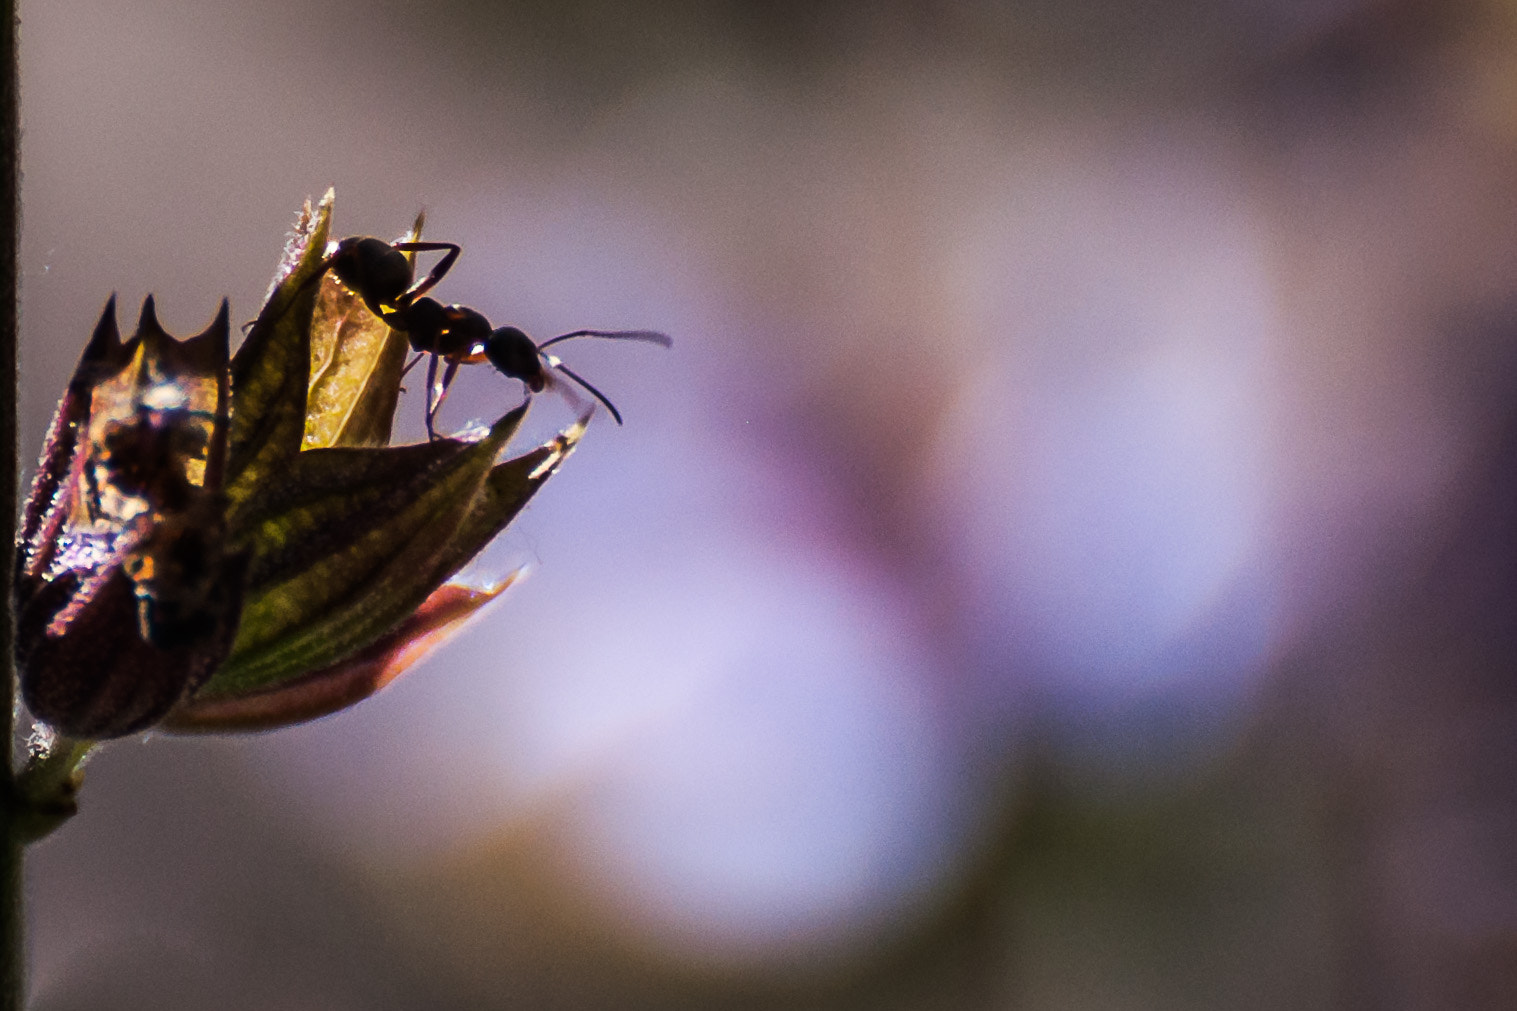 Photograph A bug's life by Carmen Royer on 500px